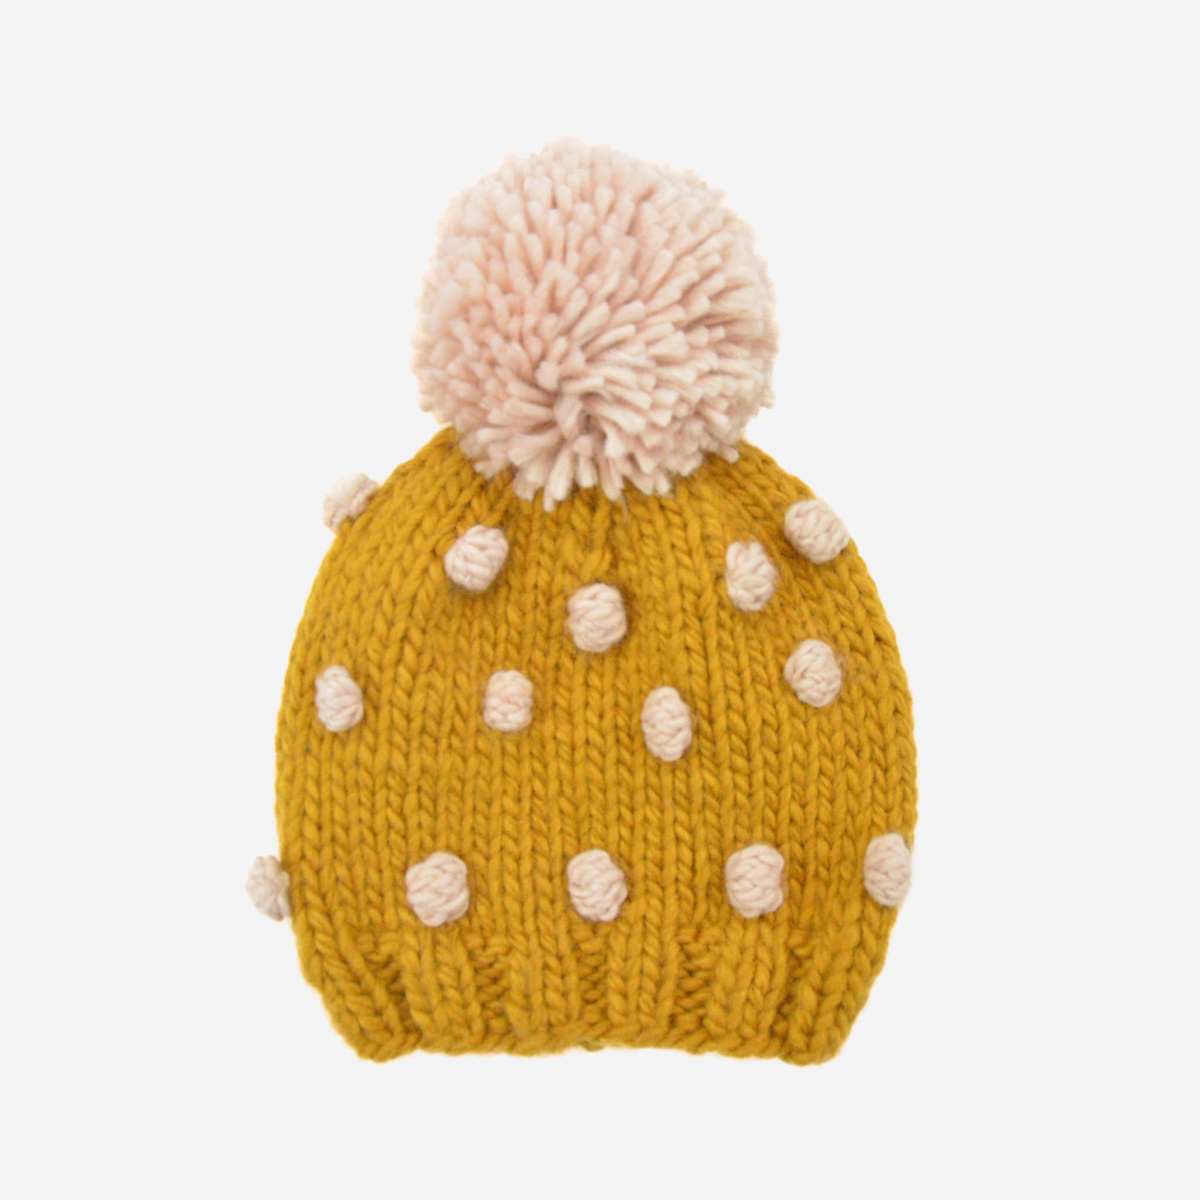 The Blueberry Hill - BH Mustard + Pink Popcorn Knit Hat, 12 - 24 mo (s)